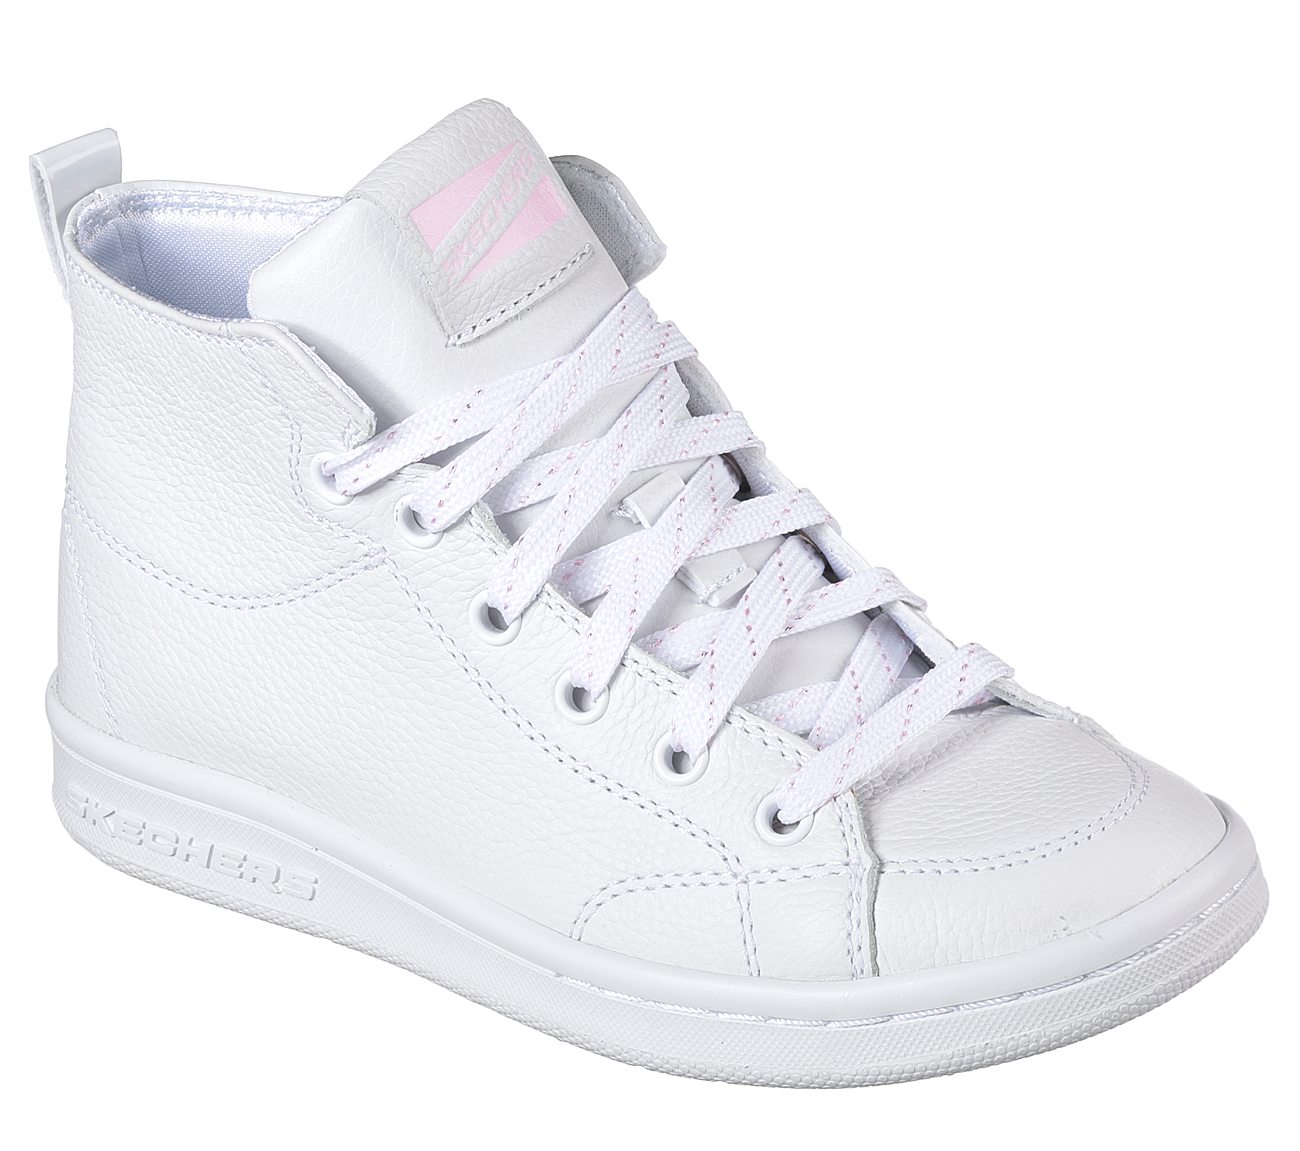 skechers shoes high tops